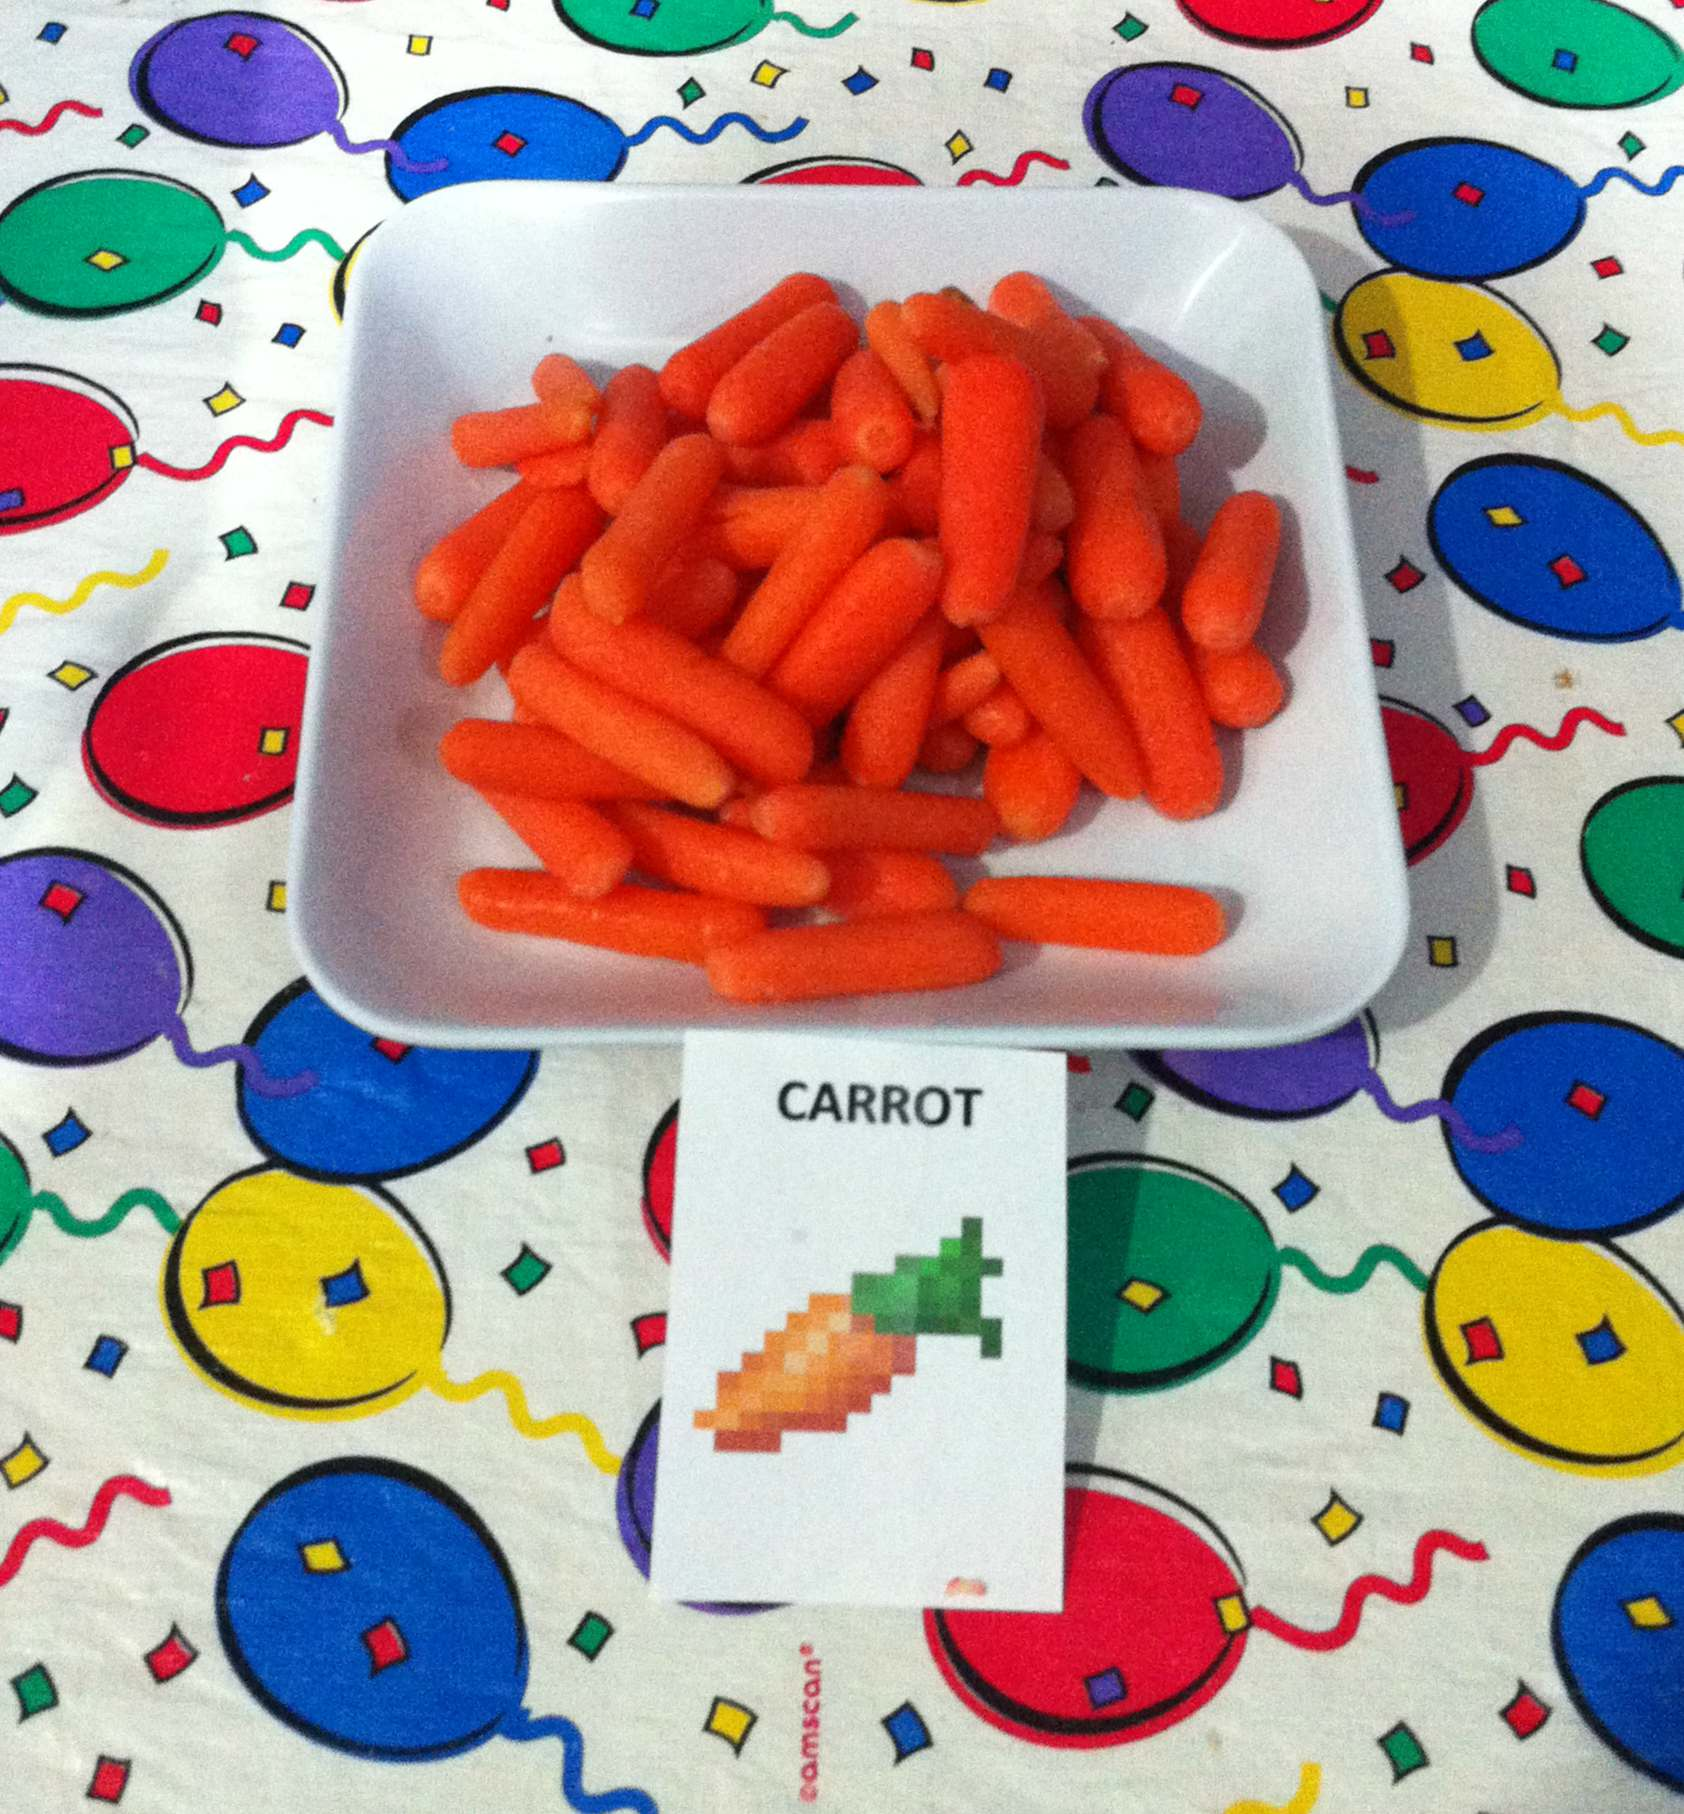 mc party dinner carrot